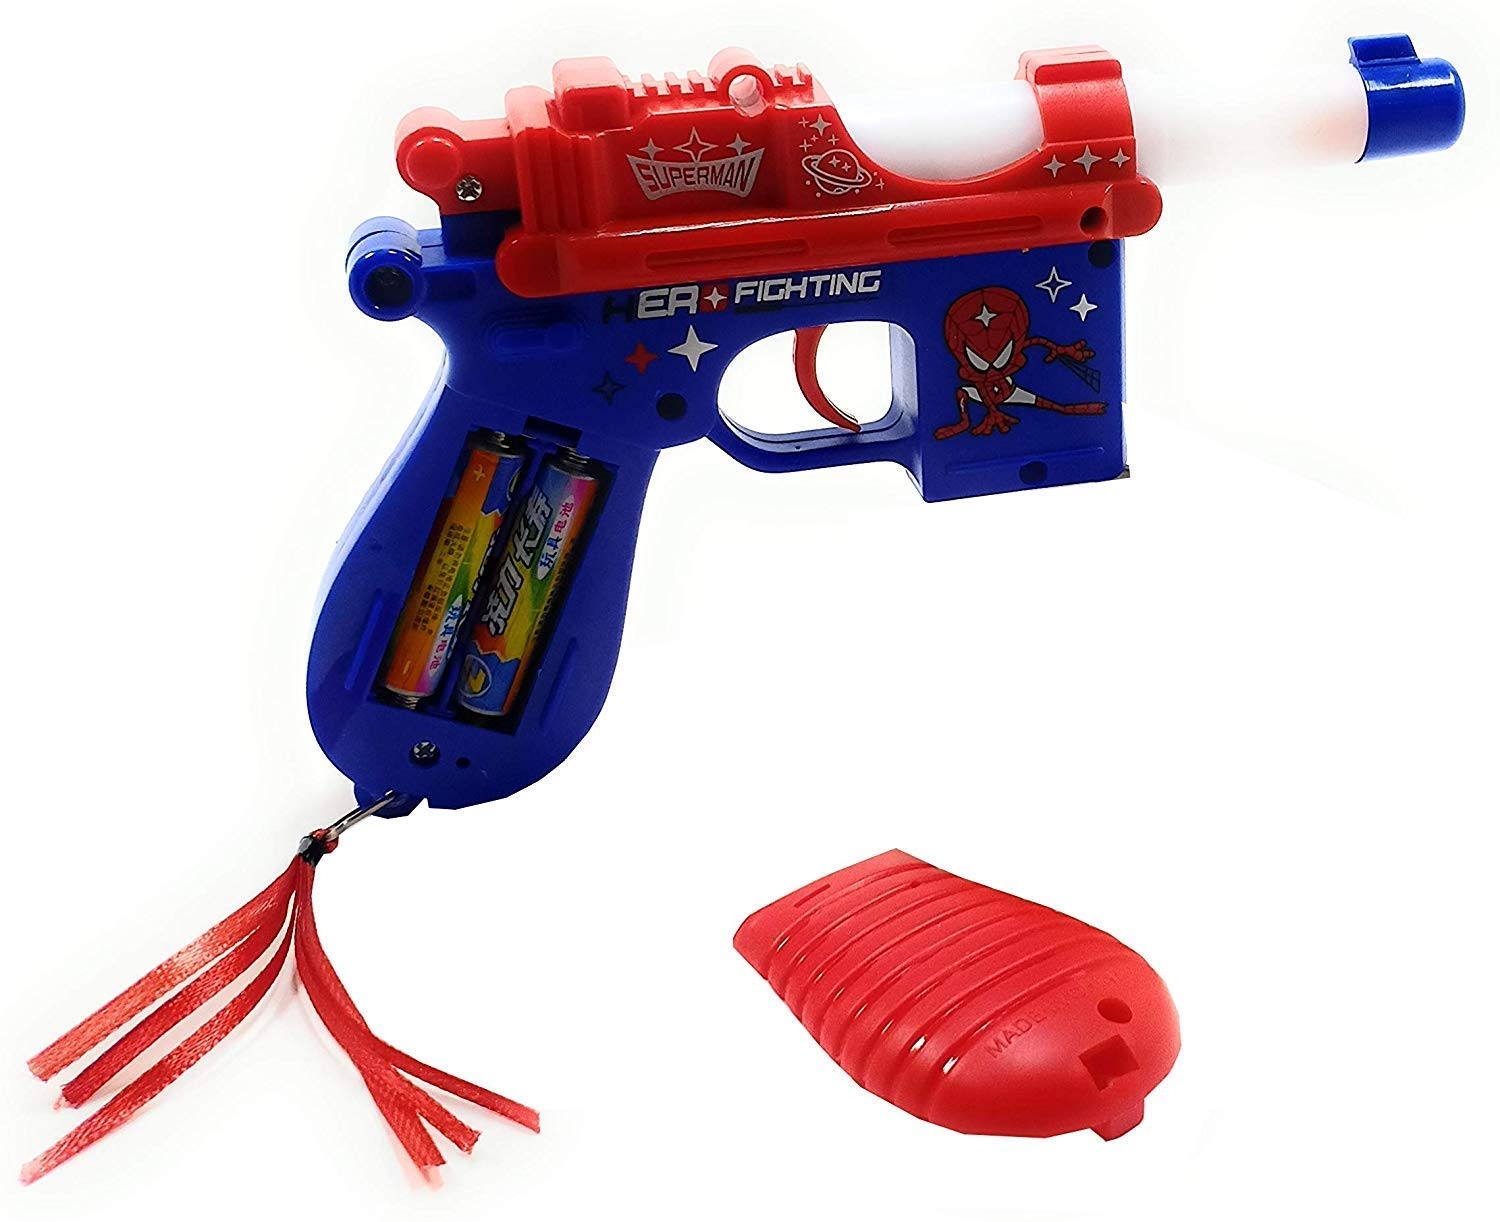 KF Deals Spiderman Projector Gun with Real Sound Light and Music for Your Kids (Multicolor) (B0828WPD3R) Amazon Price History, Amazon Price Tracker